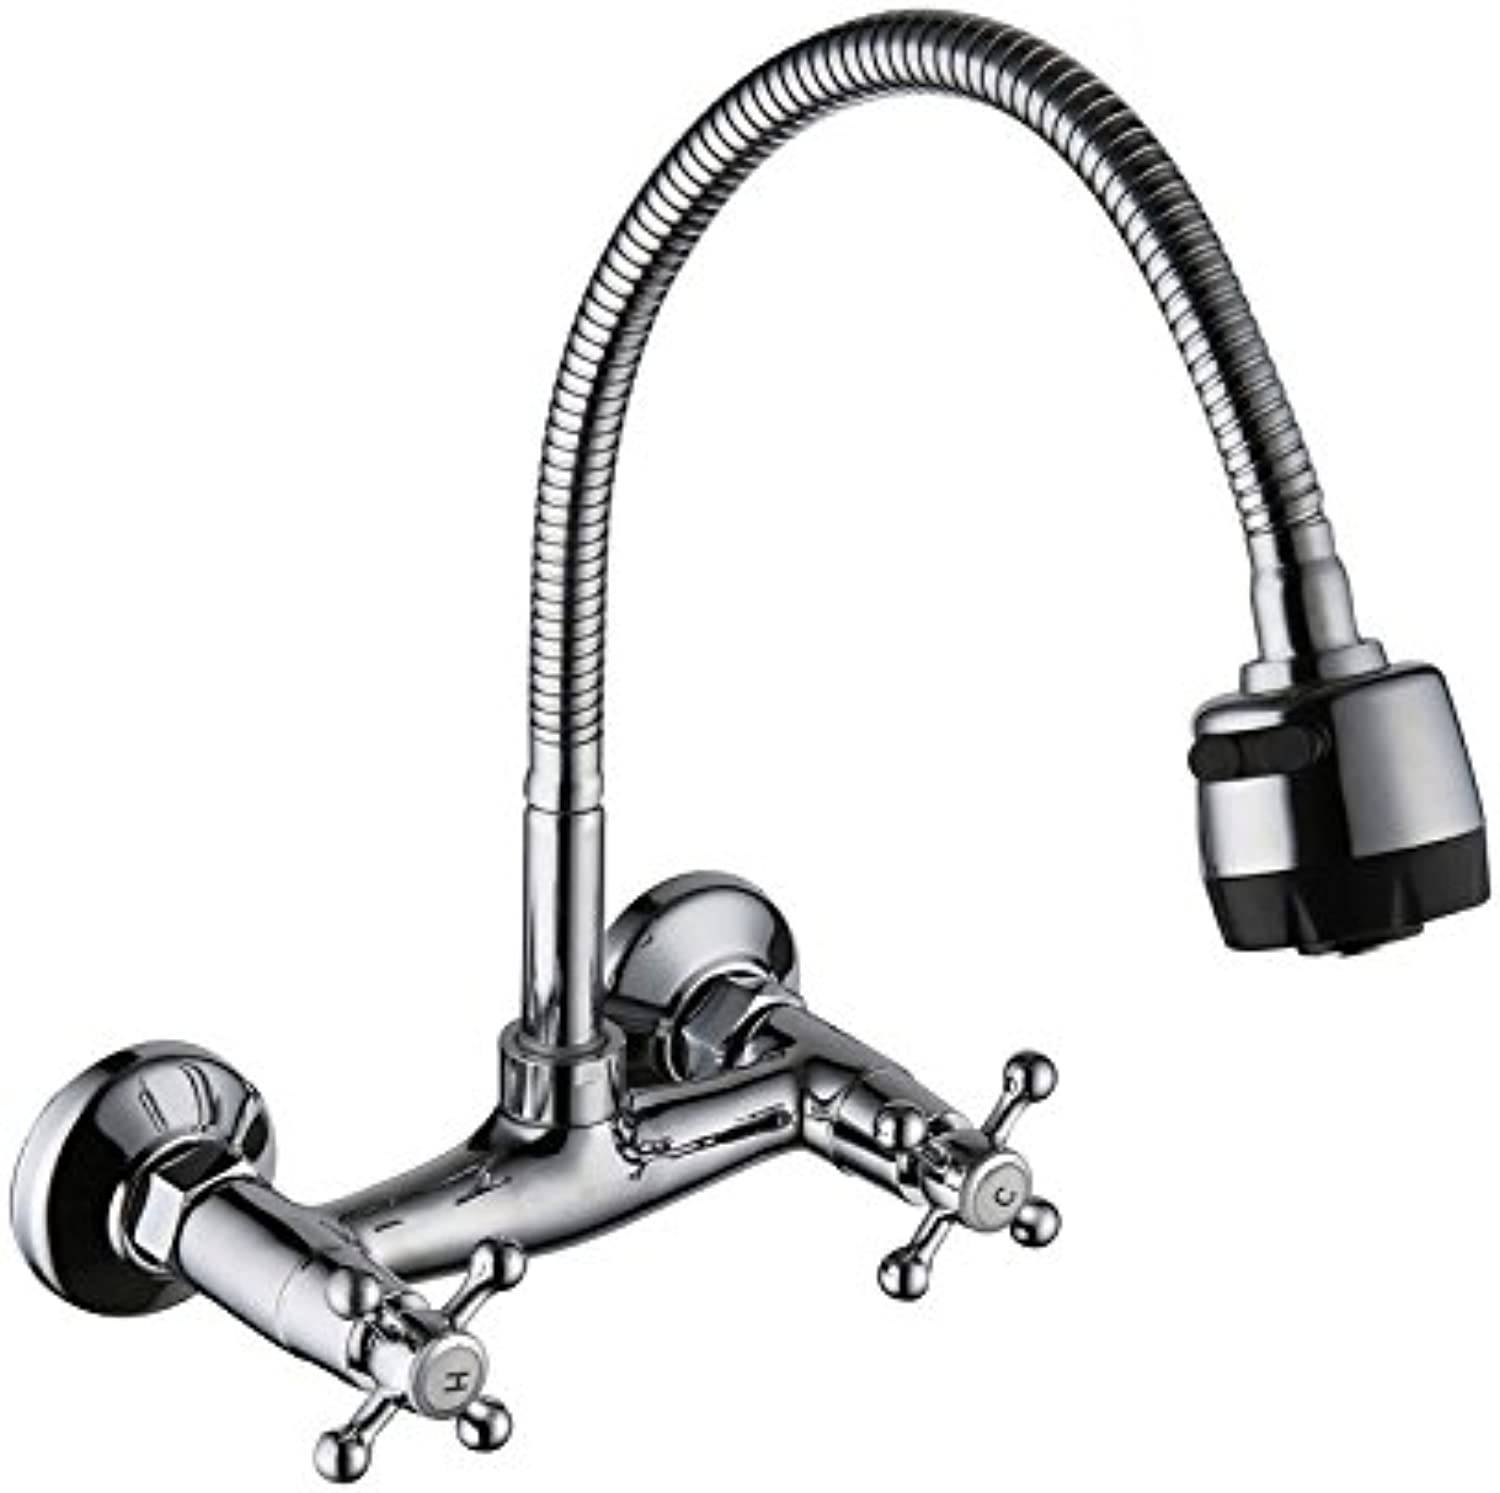 Commercial Single Lever Pull Down Kitchen Sink Faucet Brass Constructed Polished Double-in-Wall Kitchen Sink, Hot and Cold Water Faucet, Stainless Steel